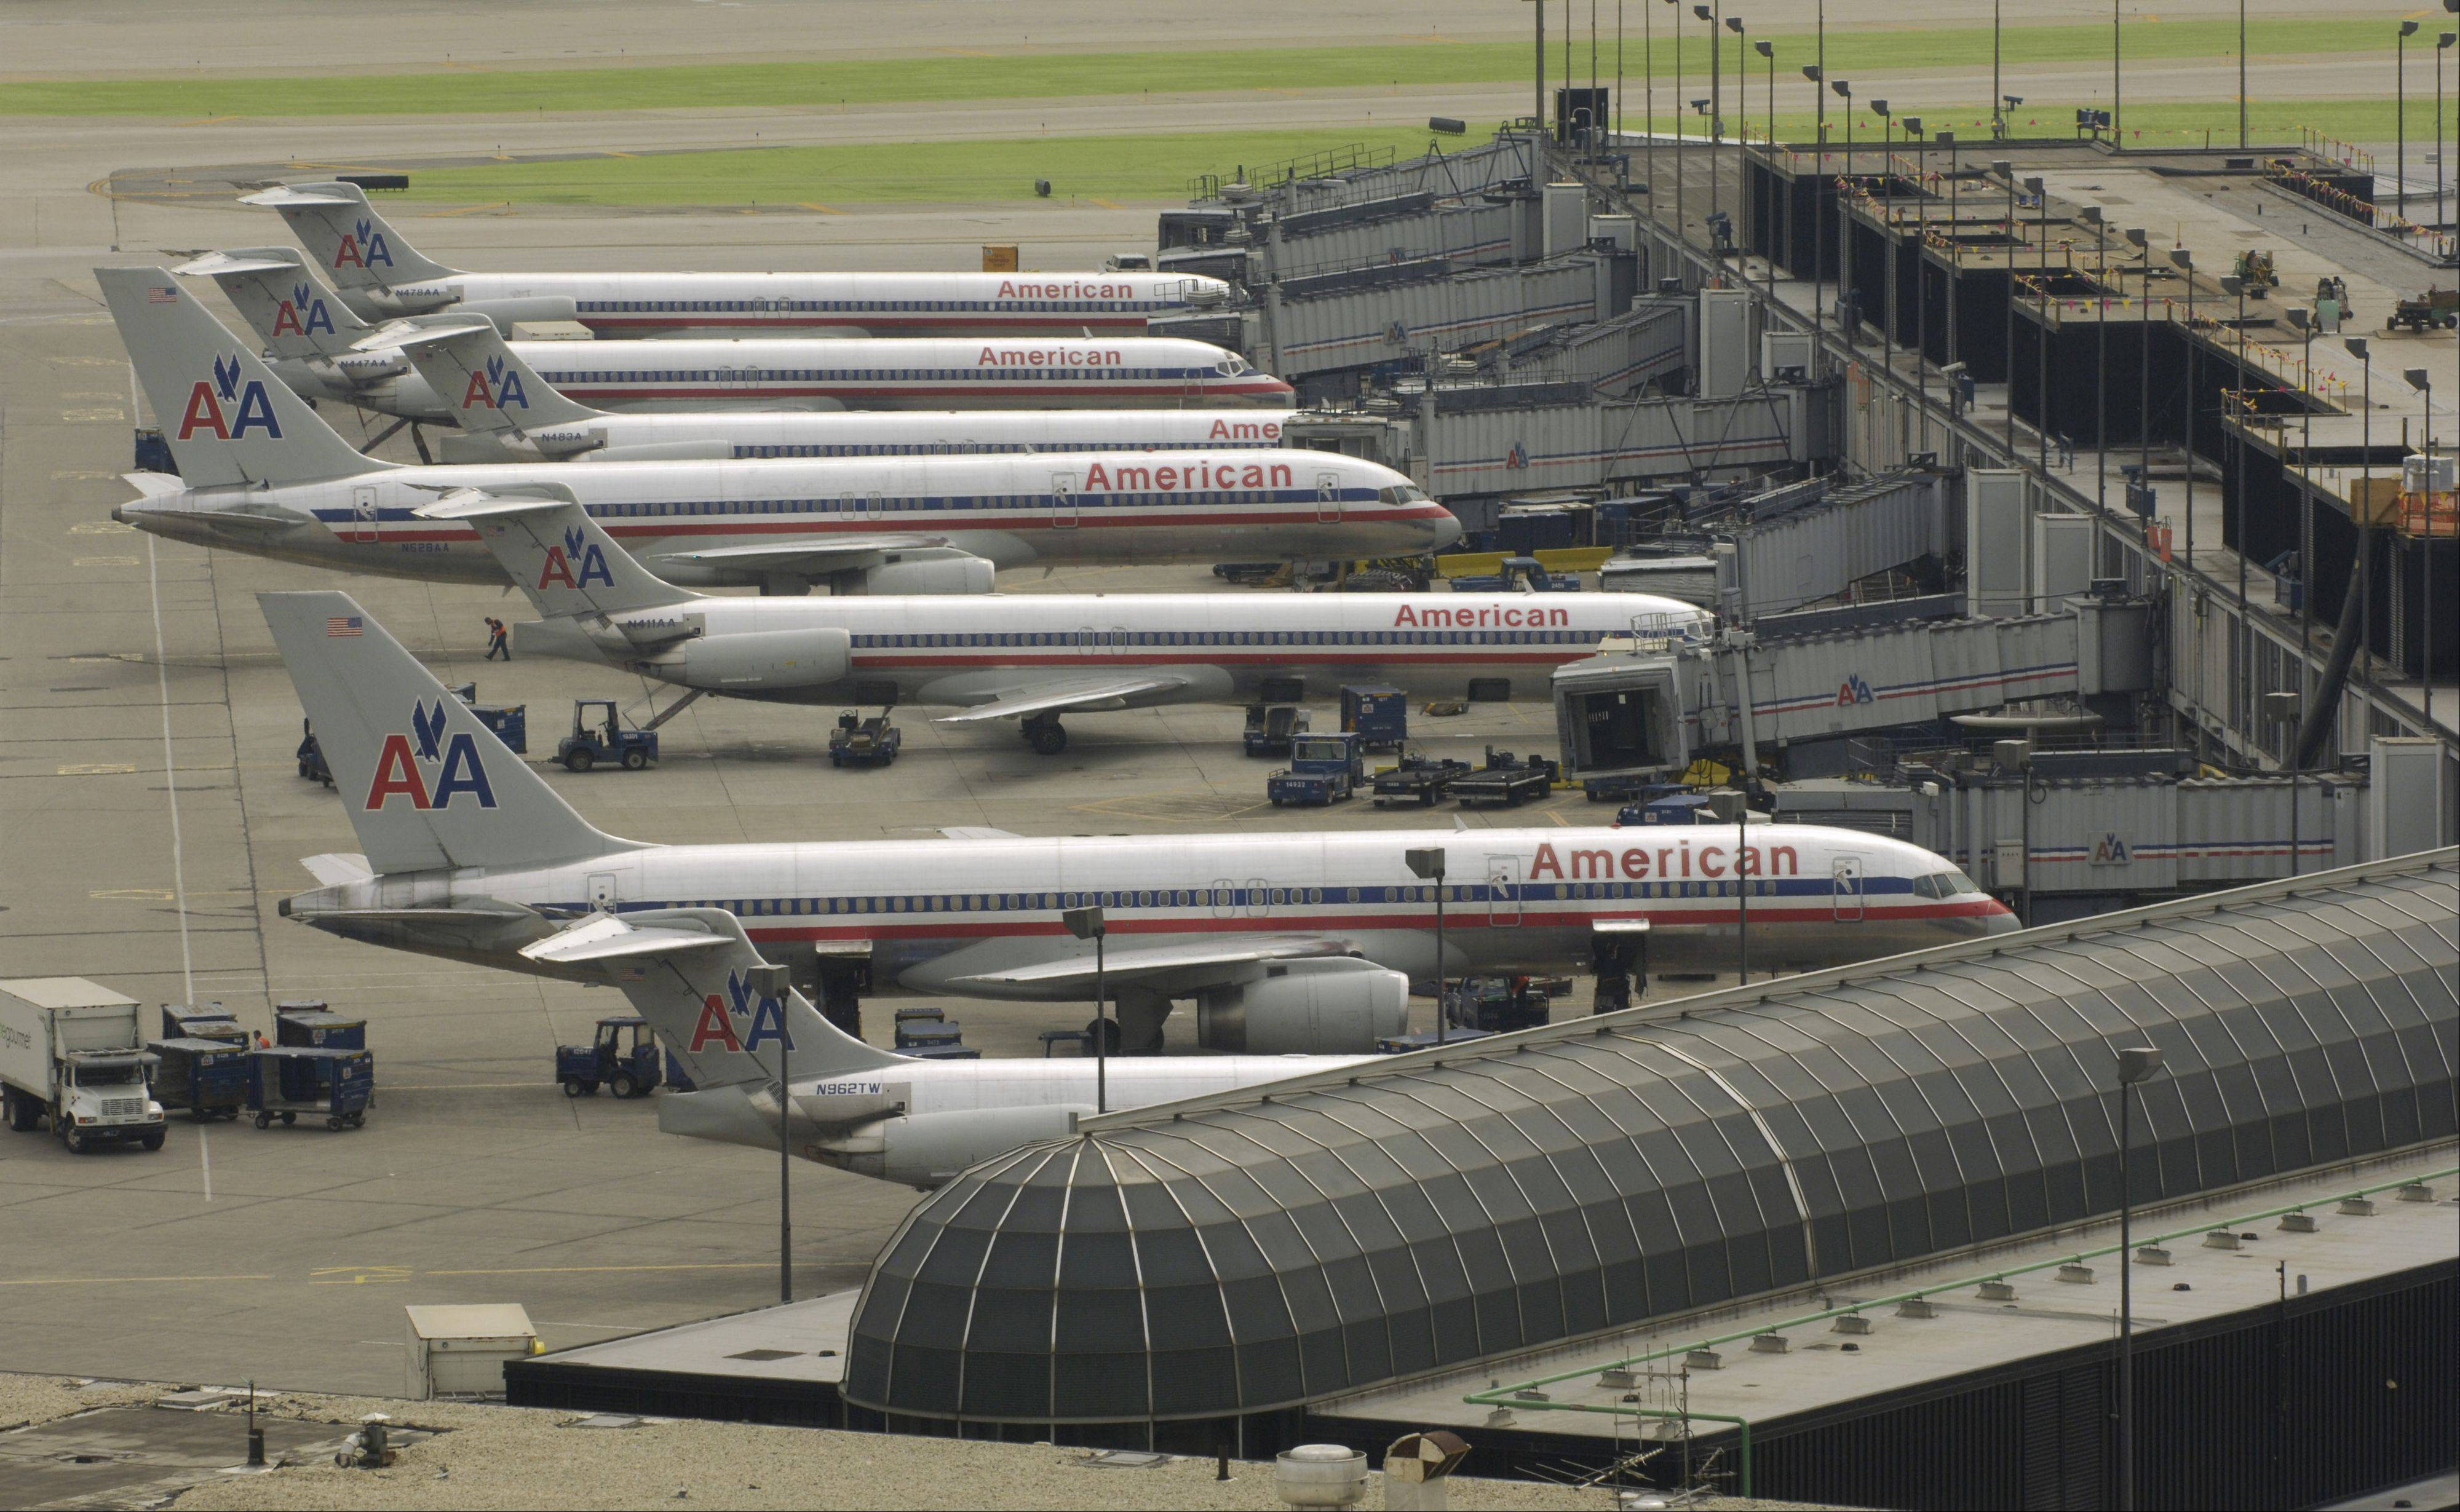 DAILY HERALD/Joe Lewnard A government watchdog says the Federal Aviation Administration�s oversight of hundreds of domestic and overseas repair stations that service U.S. airliners is ineffective and doesn�t target stations mostly likely to present safety risks.